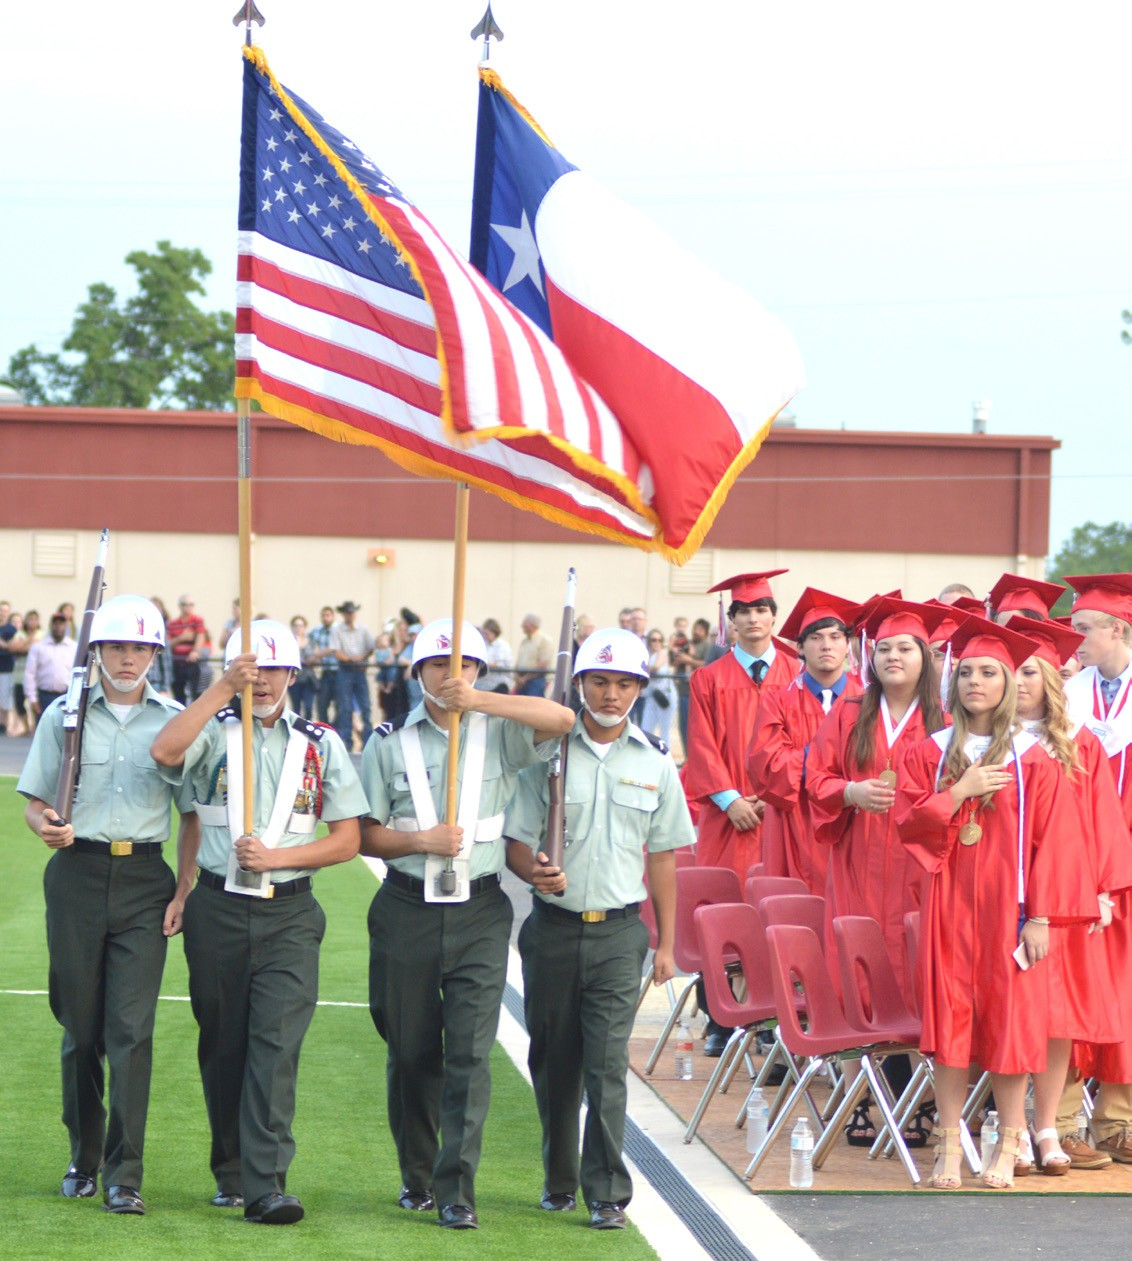 2016 Seniors rise as the Color Guard passes and the commencement ceremonies begin.